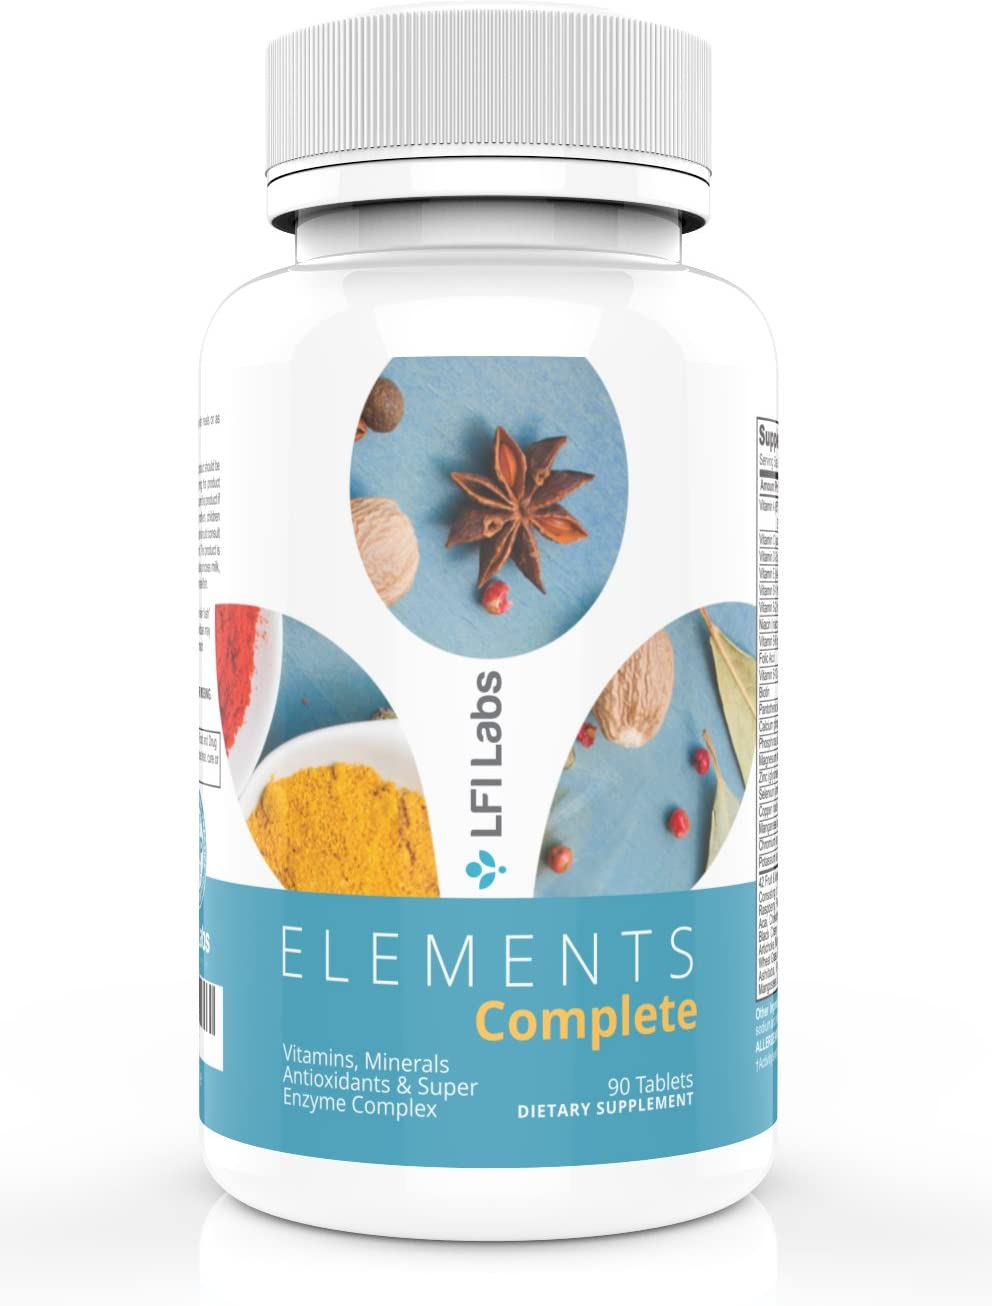 Elements Complete Best Multivitamin Superfood The Most Complete Vitamin-Mineral-Antioxidant-Probiotic-Enzyme-Superfood Blend. The ultimate All-In-One.